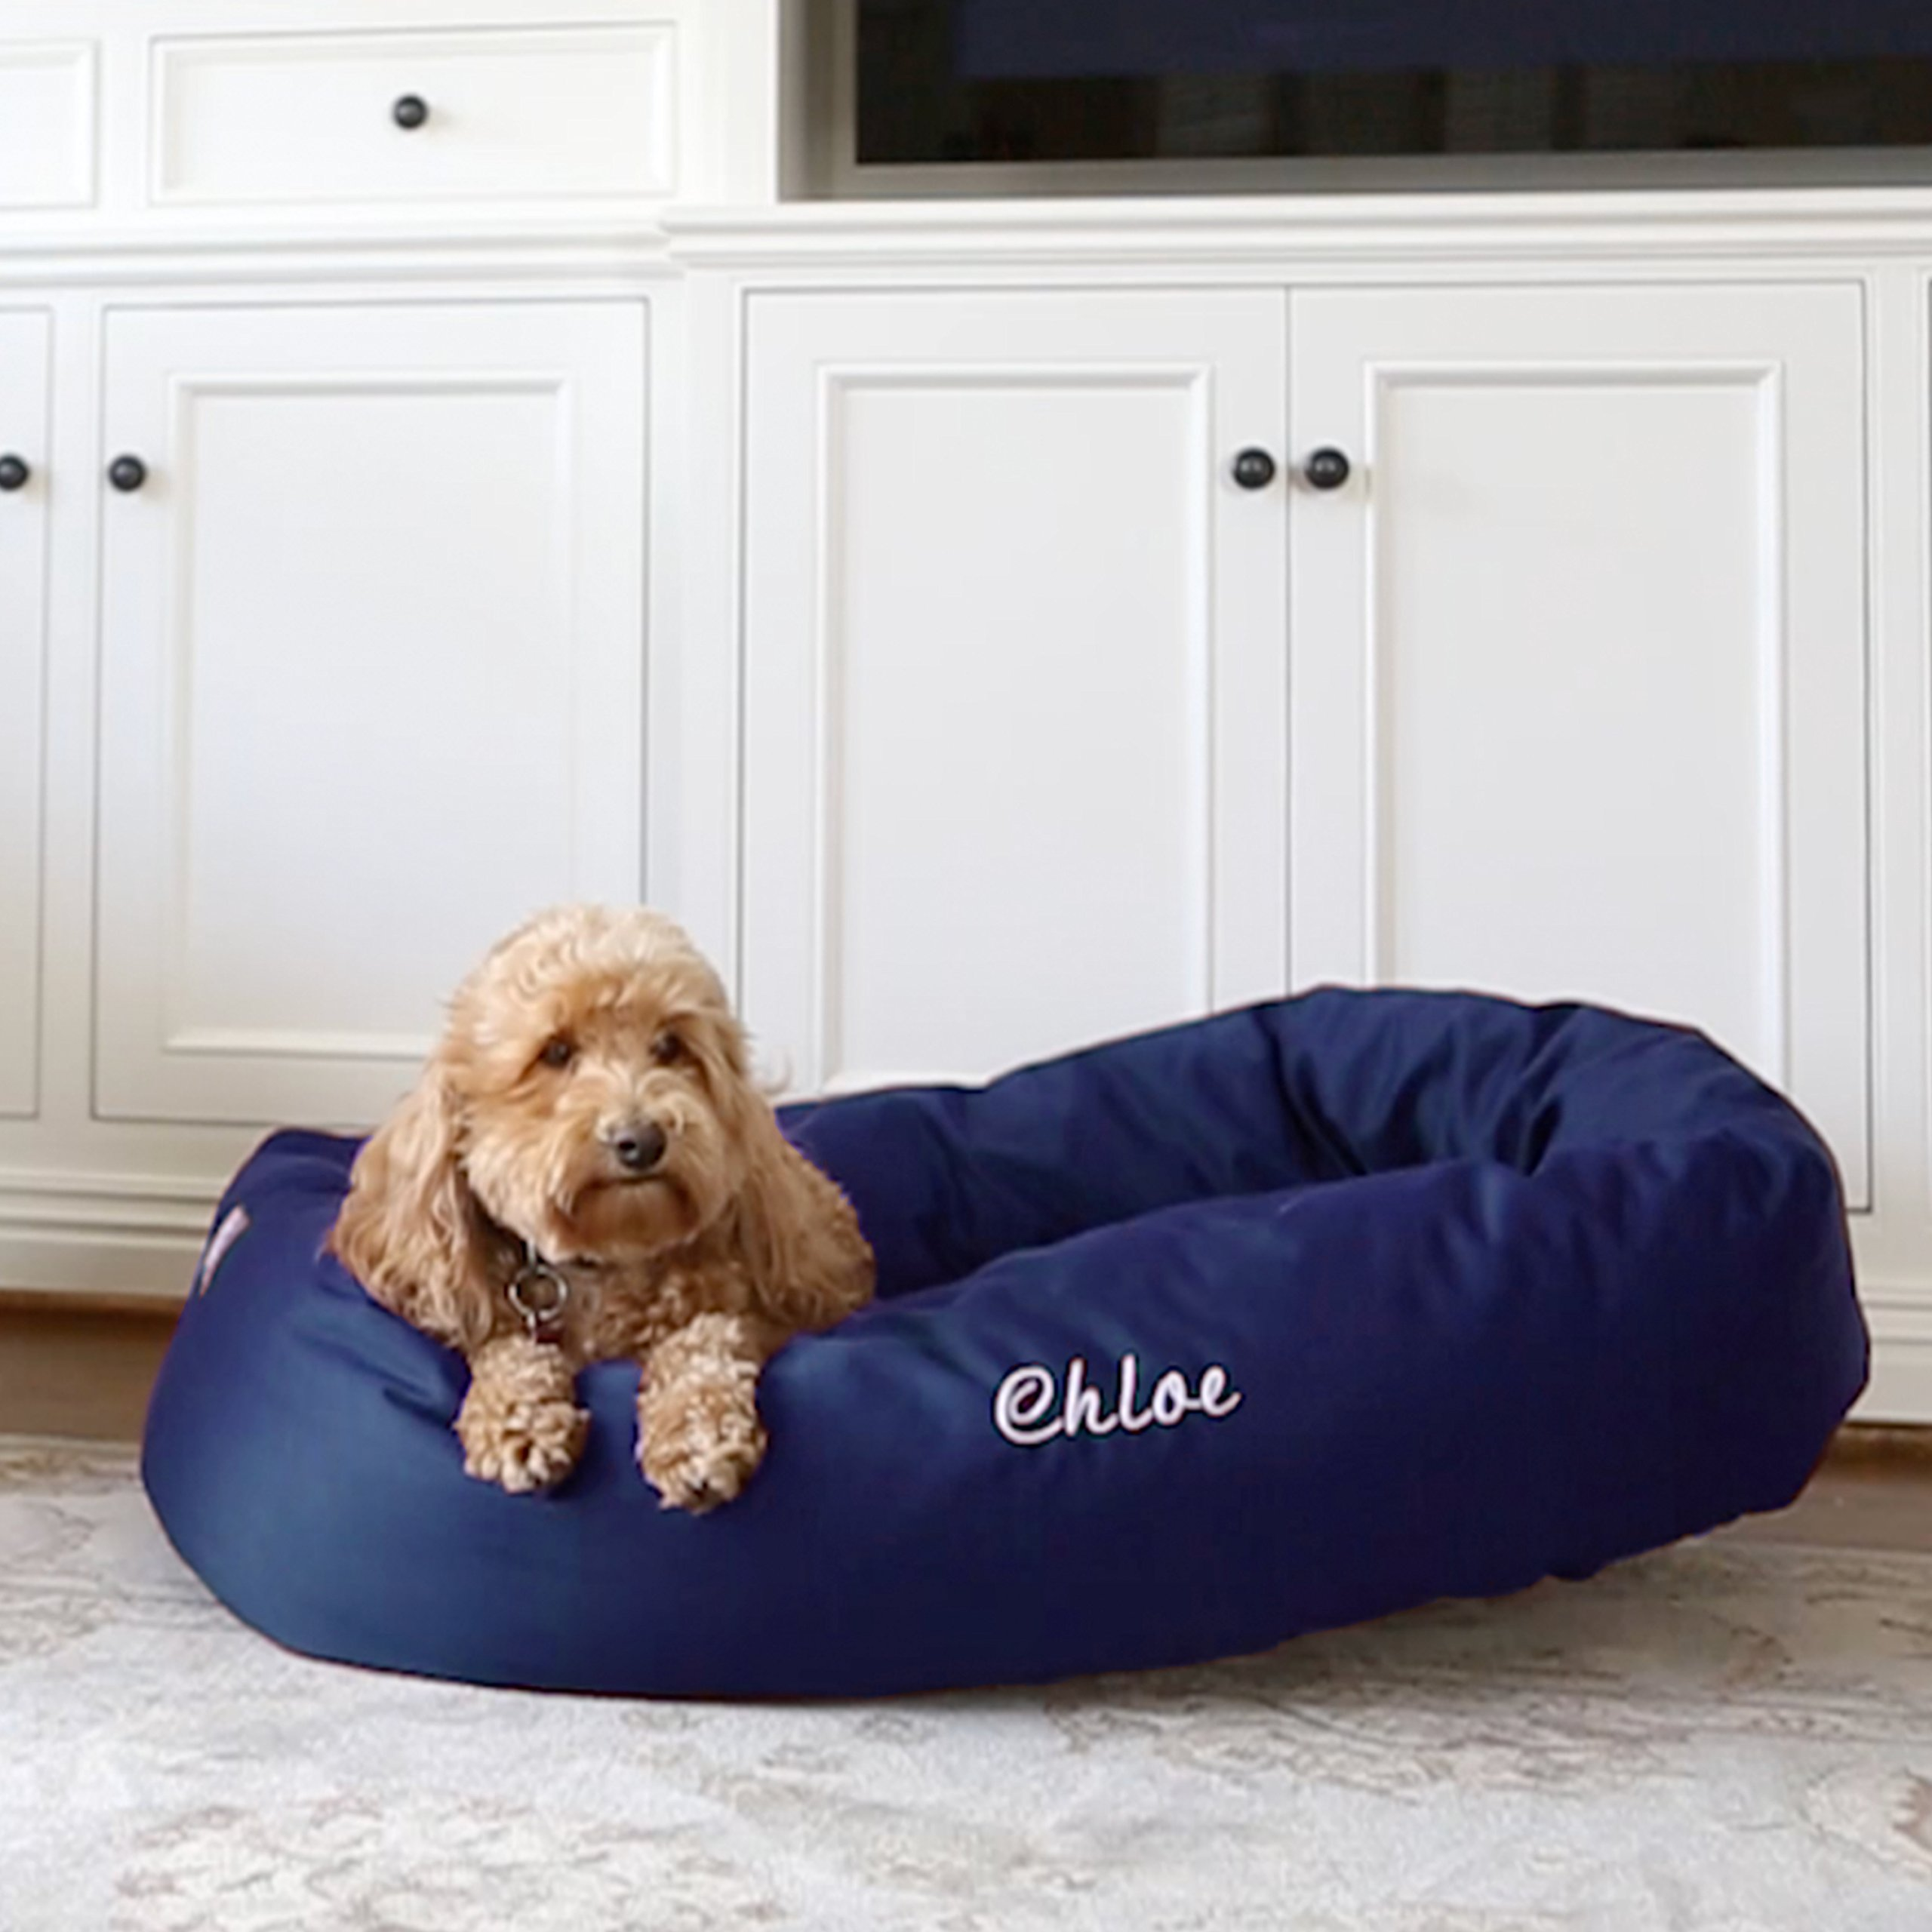 Majestic Pet Personalized Bagel Dog Bed - Machine Washable - Soft Comfortable Sleeping Mat - Durable Bedding Supportive Cushion Custom Embroidered - Available Replacement Covers - Extra Large Blue